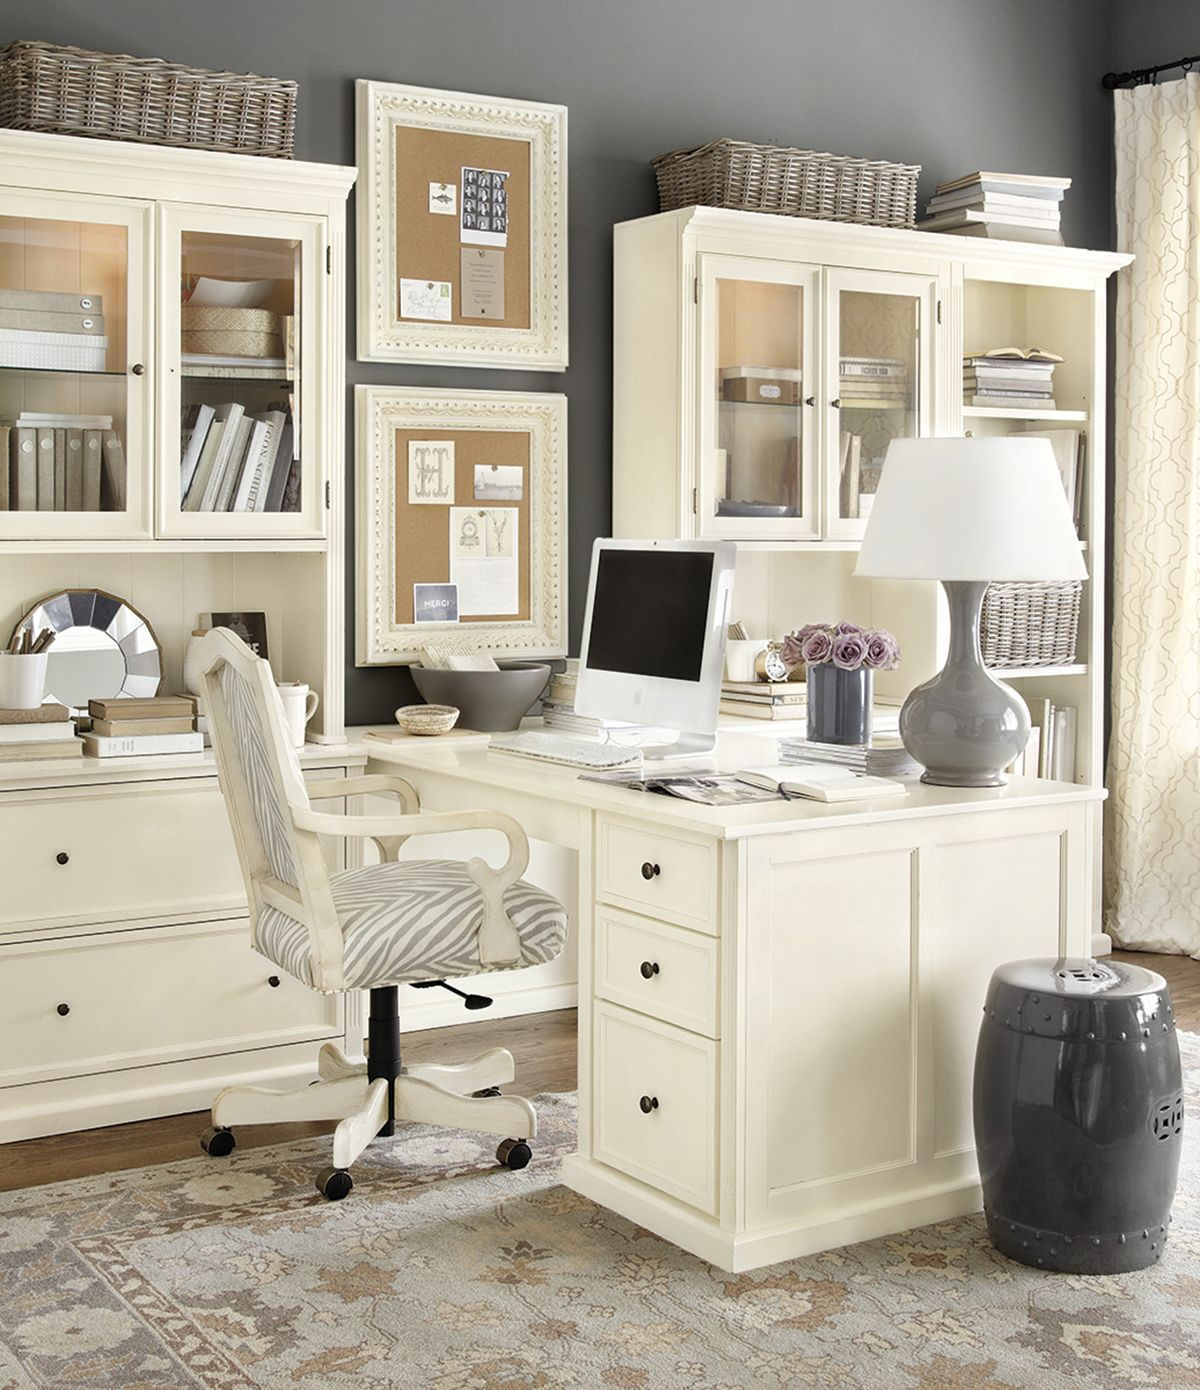 White workspace home office details ideas for homeoffice interior design decoration organization architecture desk also photo gallery craft rooms pinterest decor rh br